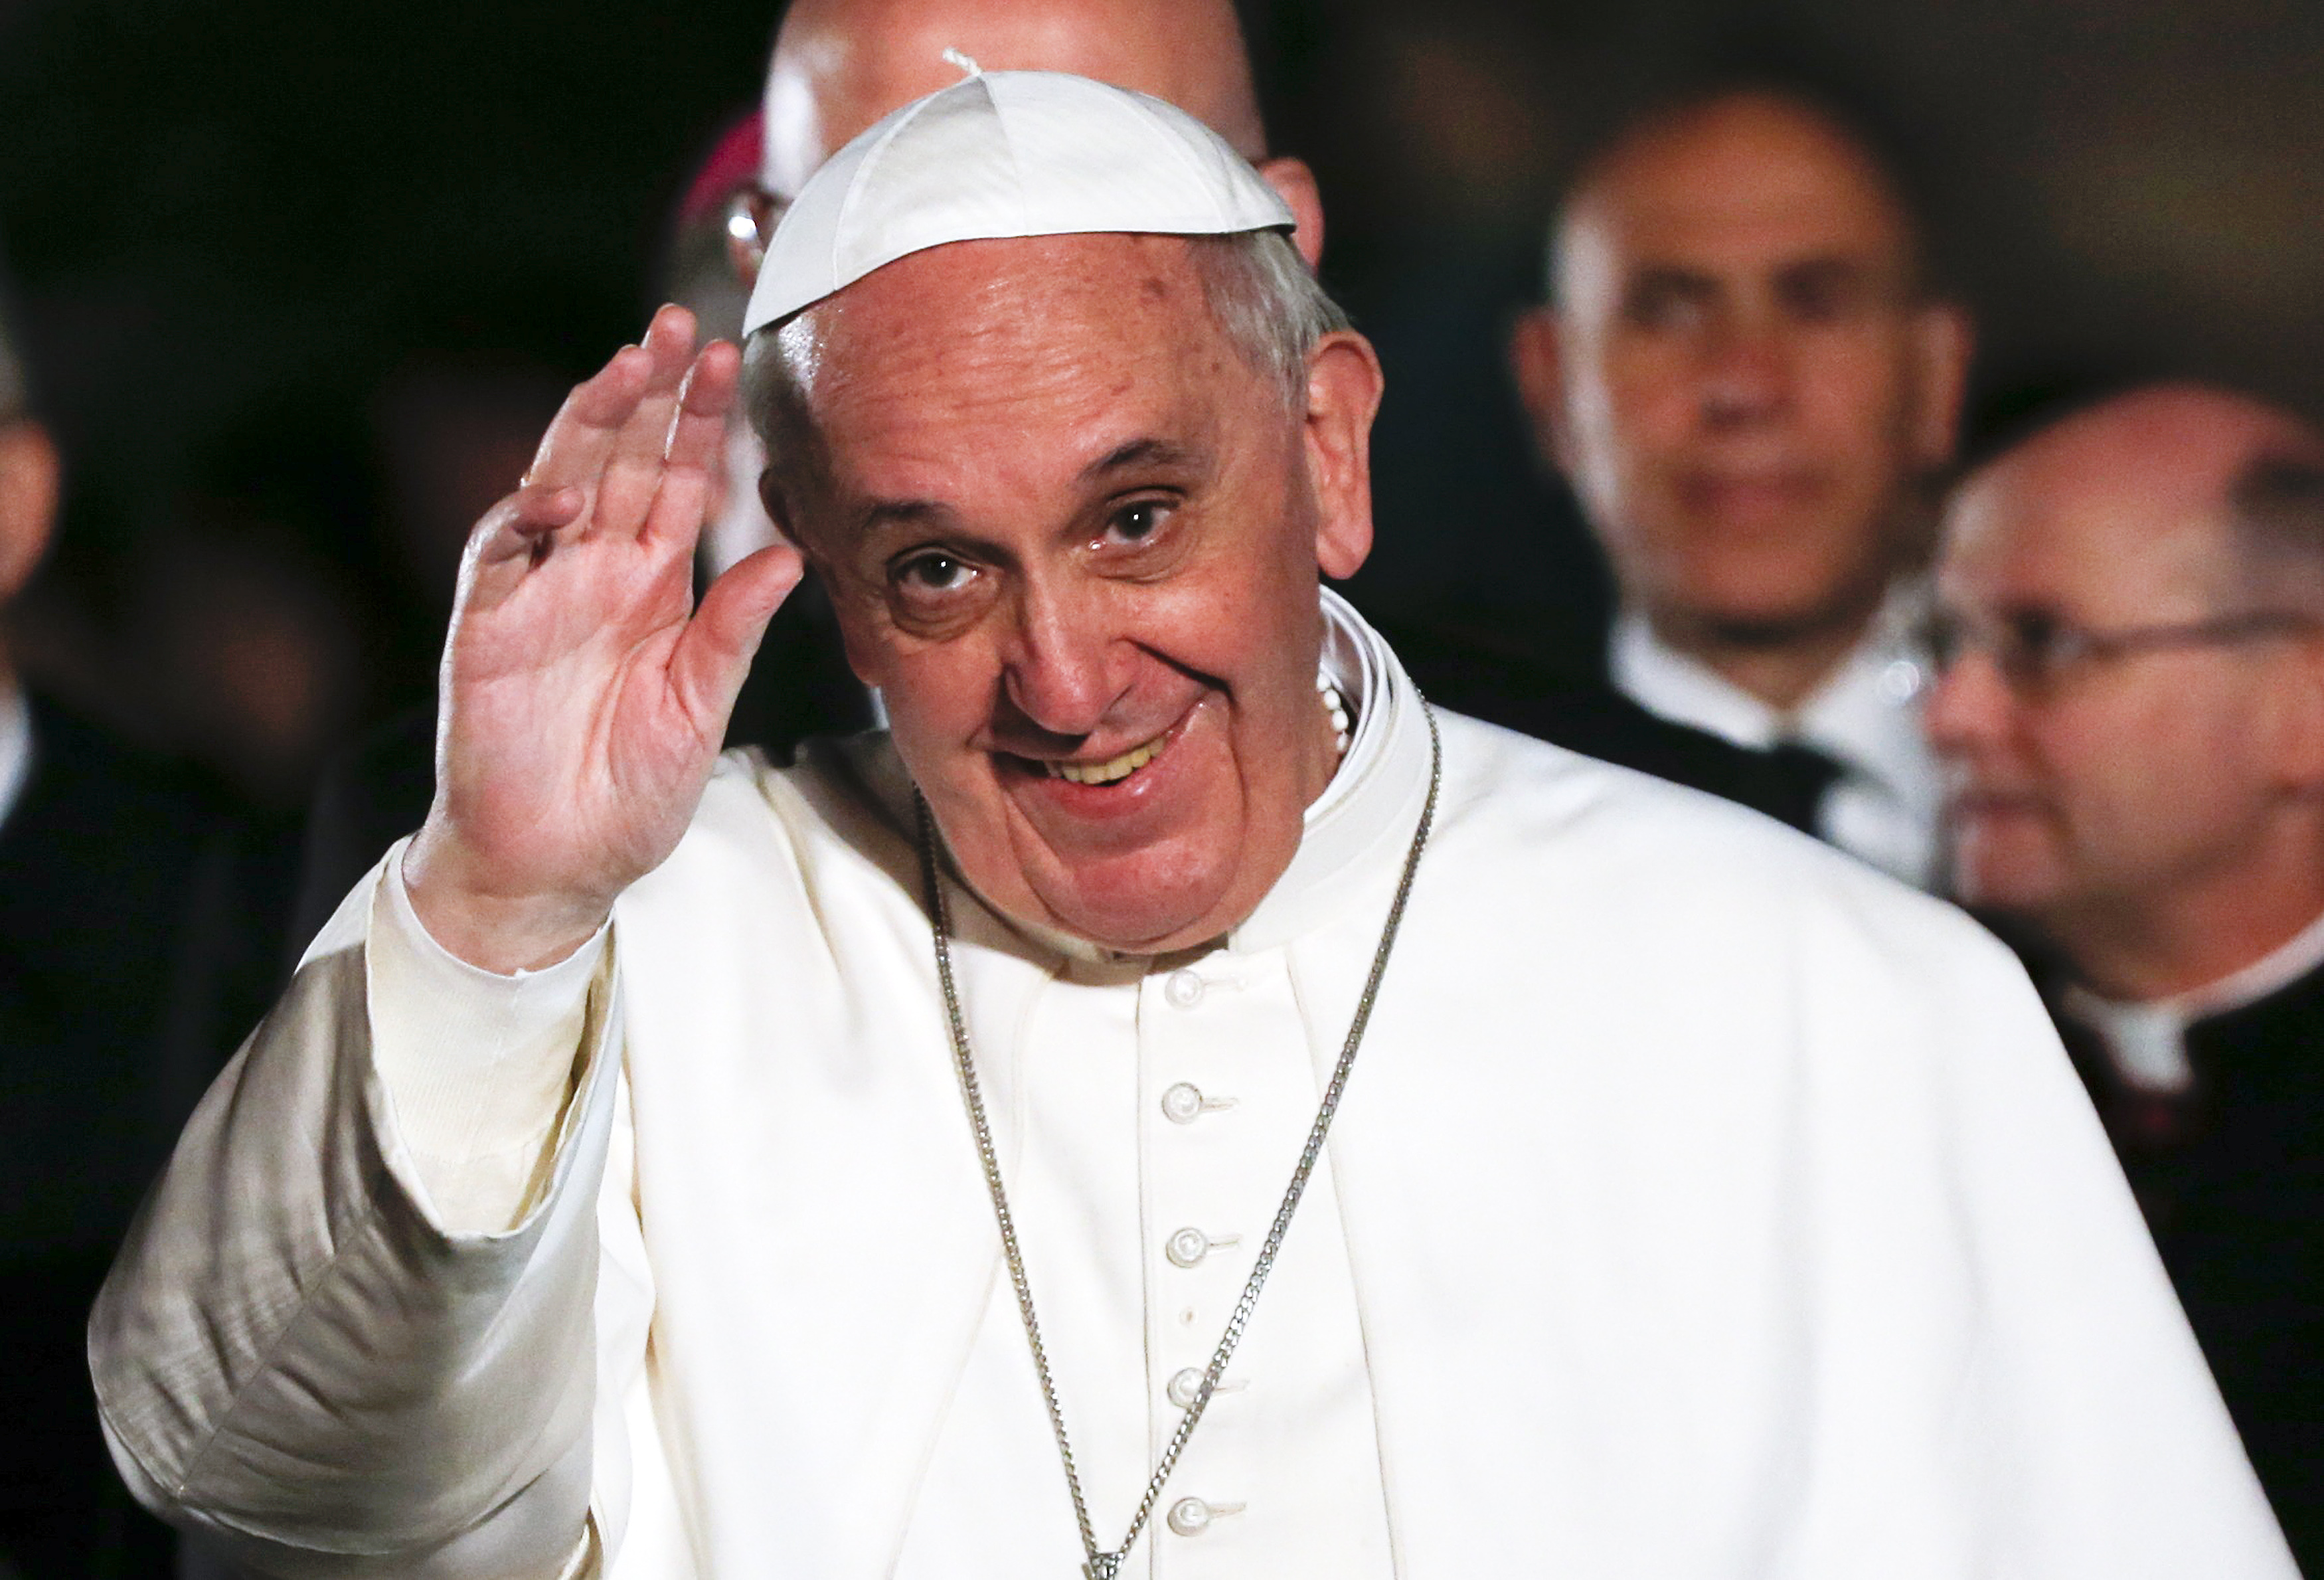 francis latin dating site Visiting the official website of the holy see one can browse: the magisterium of  the supreme pontiffs (from pope leo xiii to pope francis) the fundamental texts .